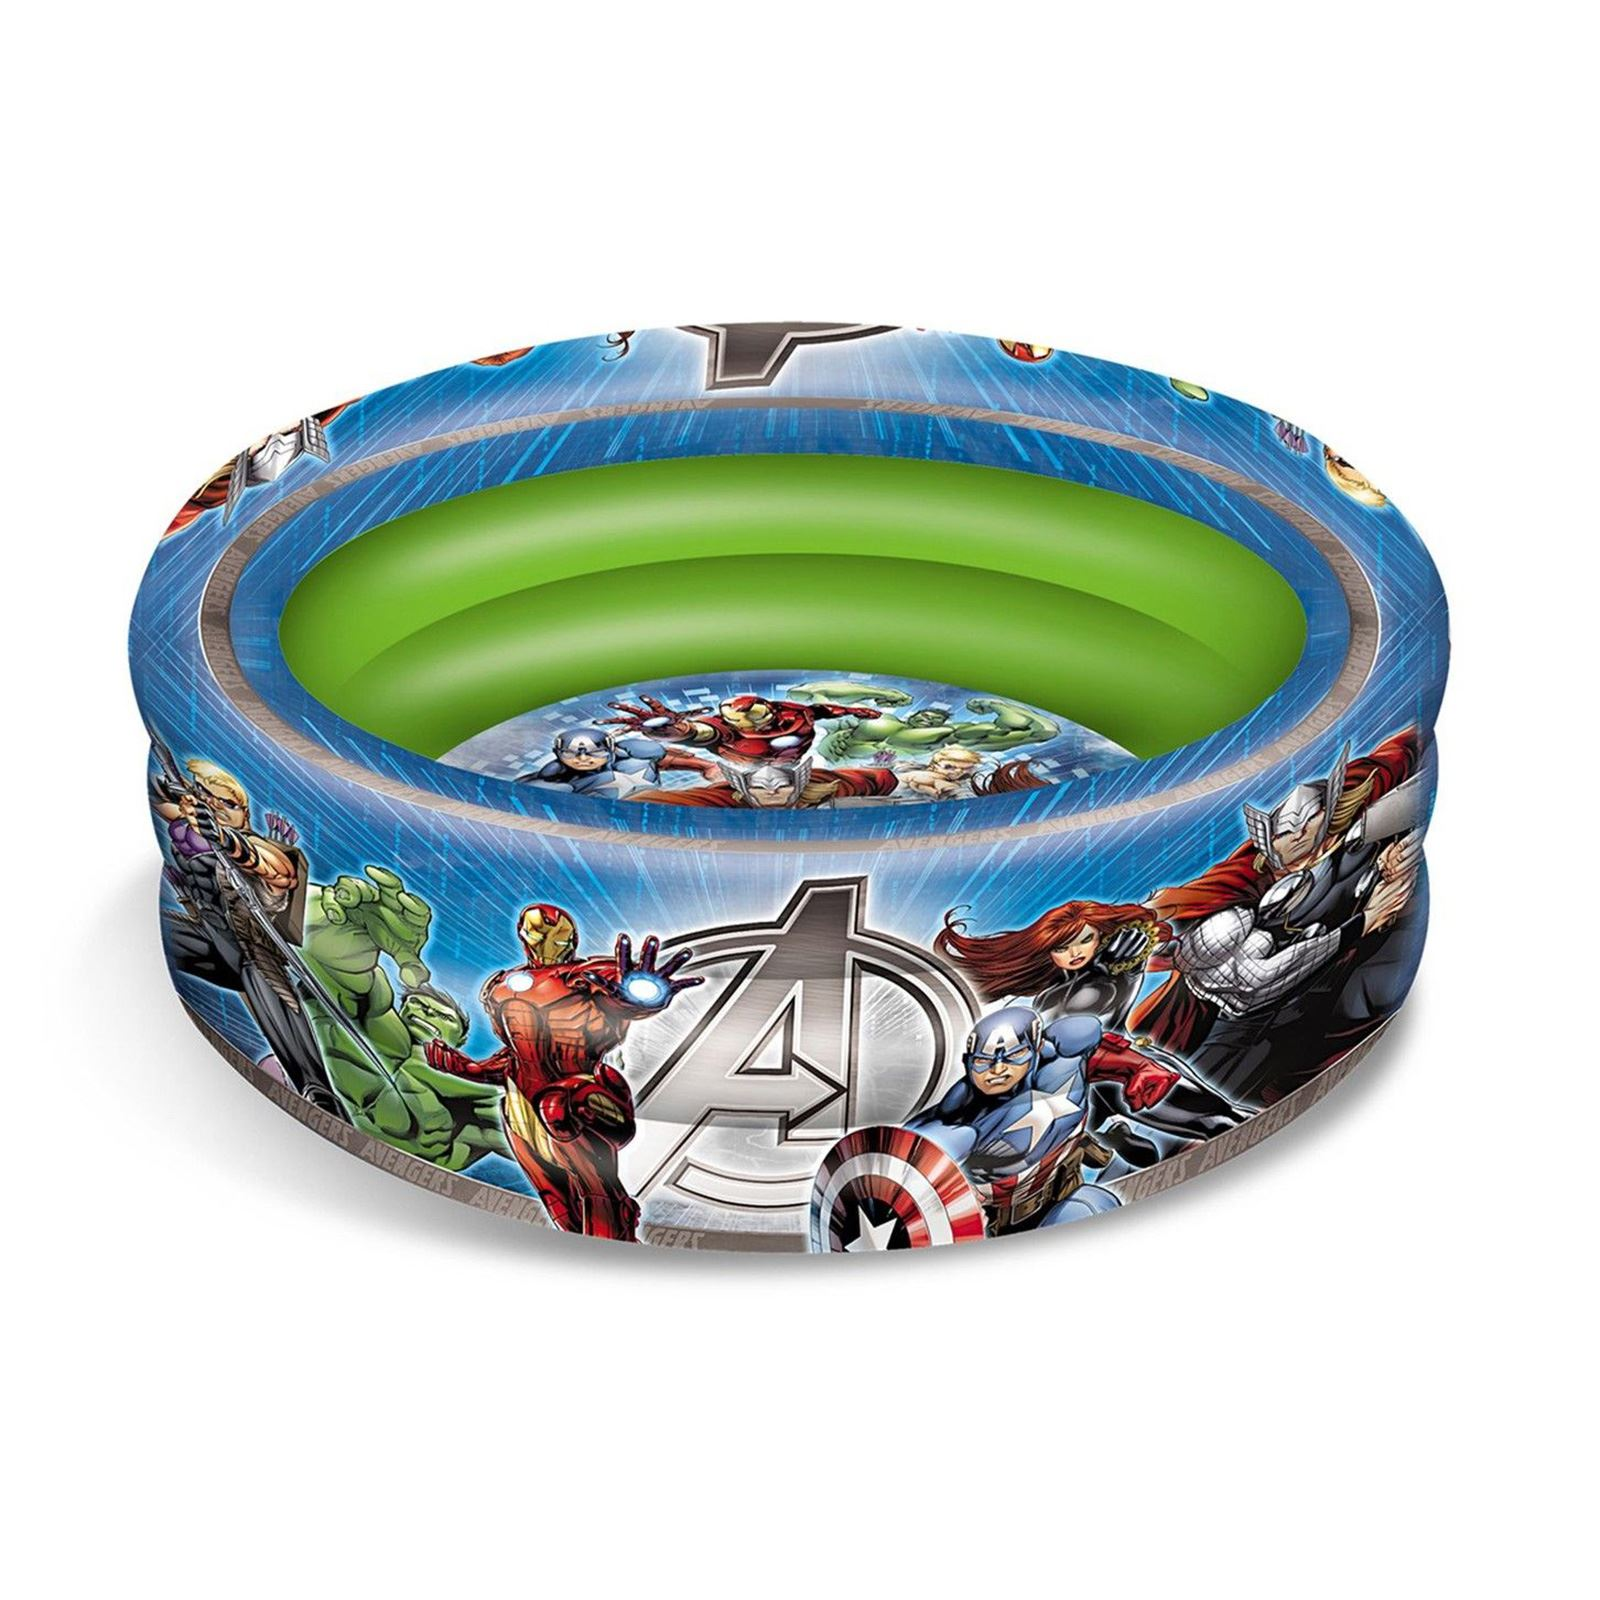 Kids Character Inflatable Paddling Pool Minions Avengers